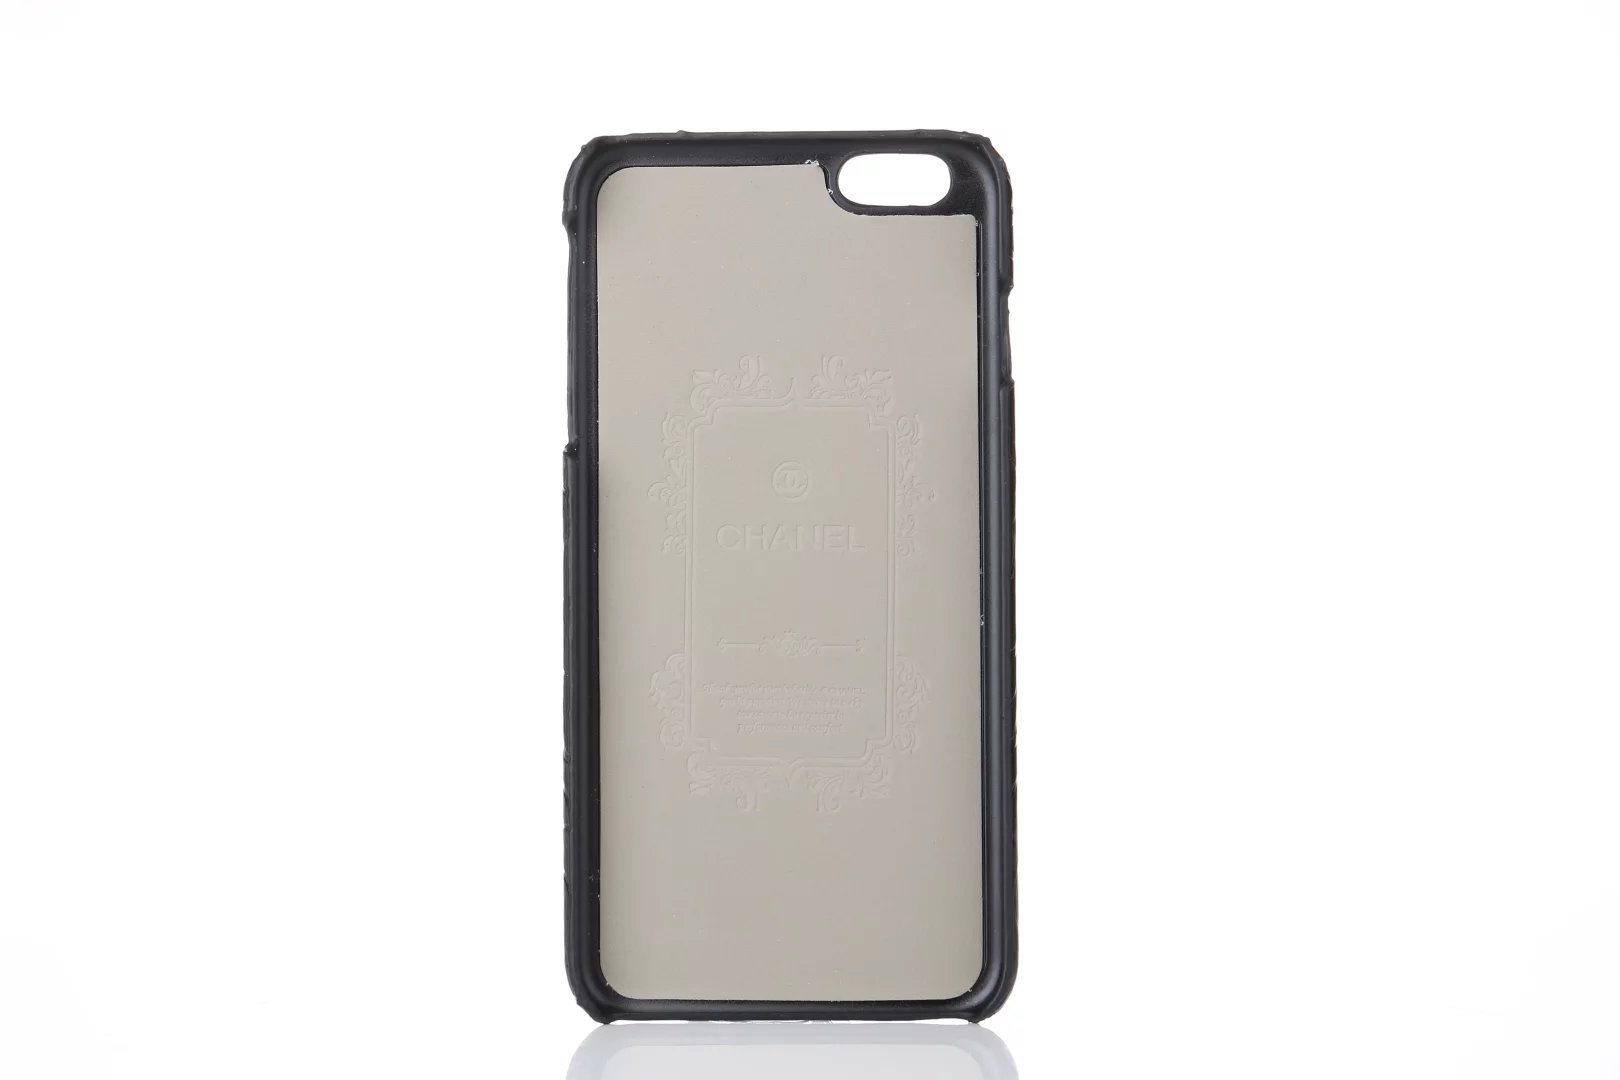 buy iphone 6 covers designer phone cases iphone 6 fashion iphone6 case iphone cases 6 best cell phone case companies glowing iphone case iphone case aluminum cover for iphone 6 branded mobile phone covers